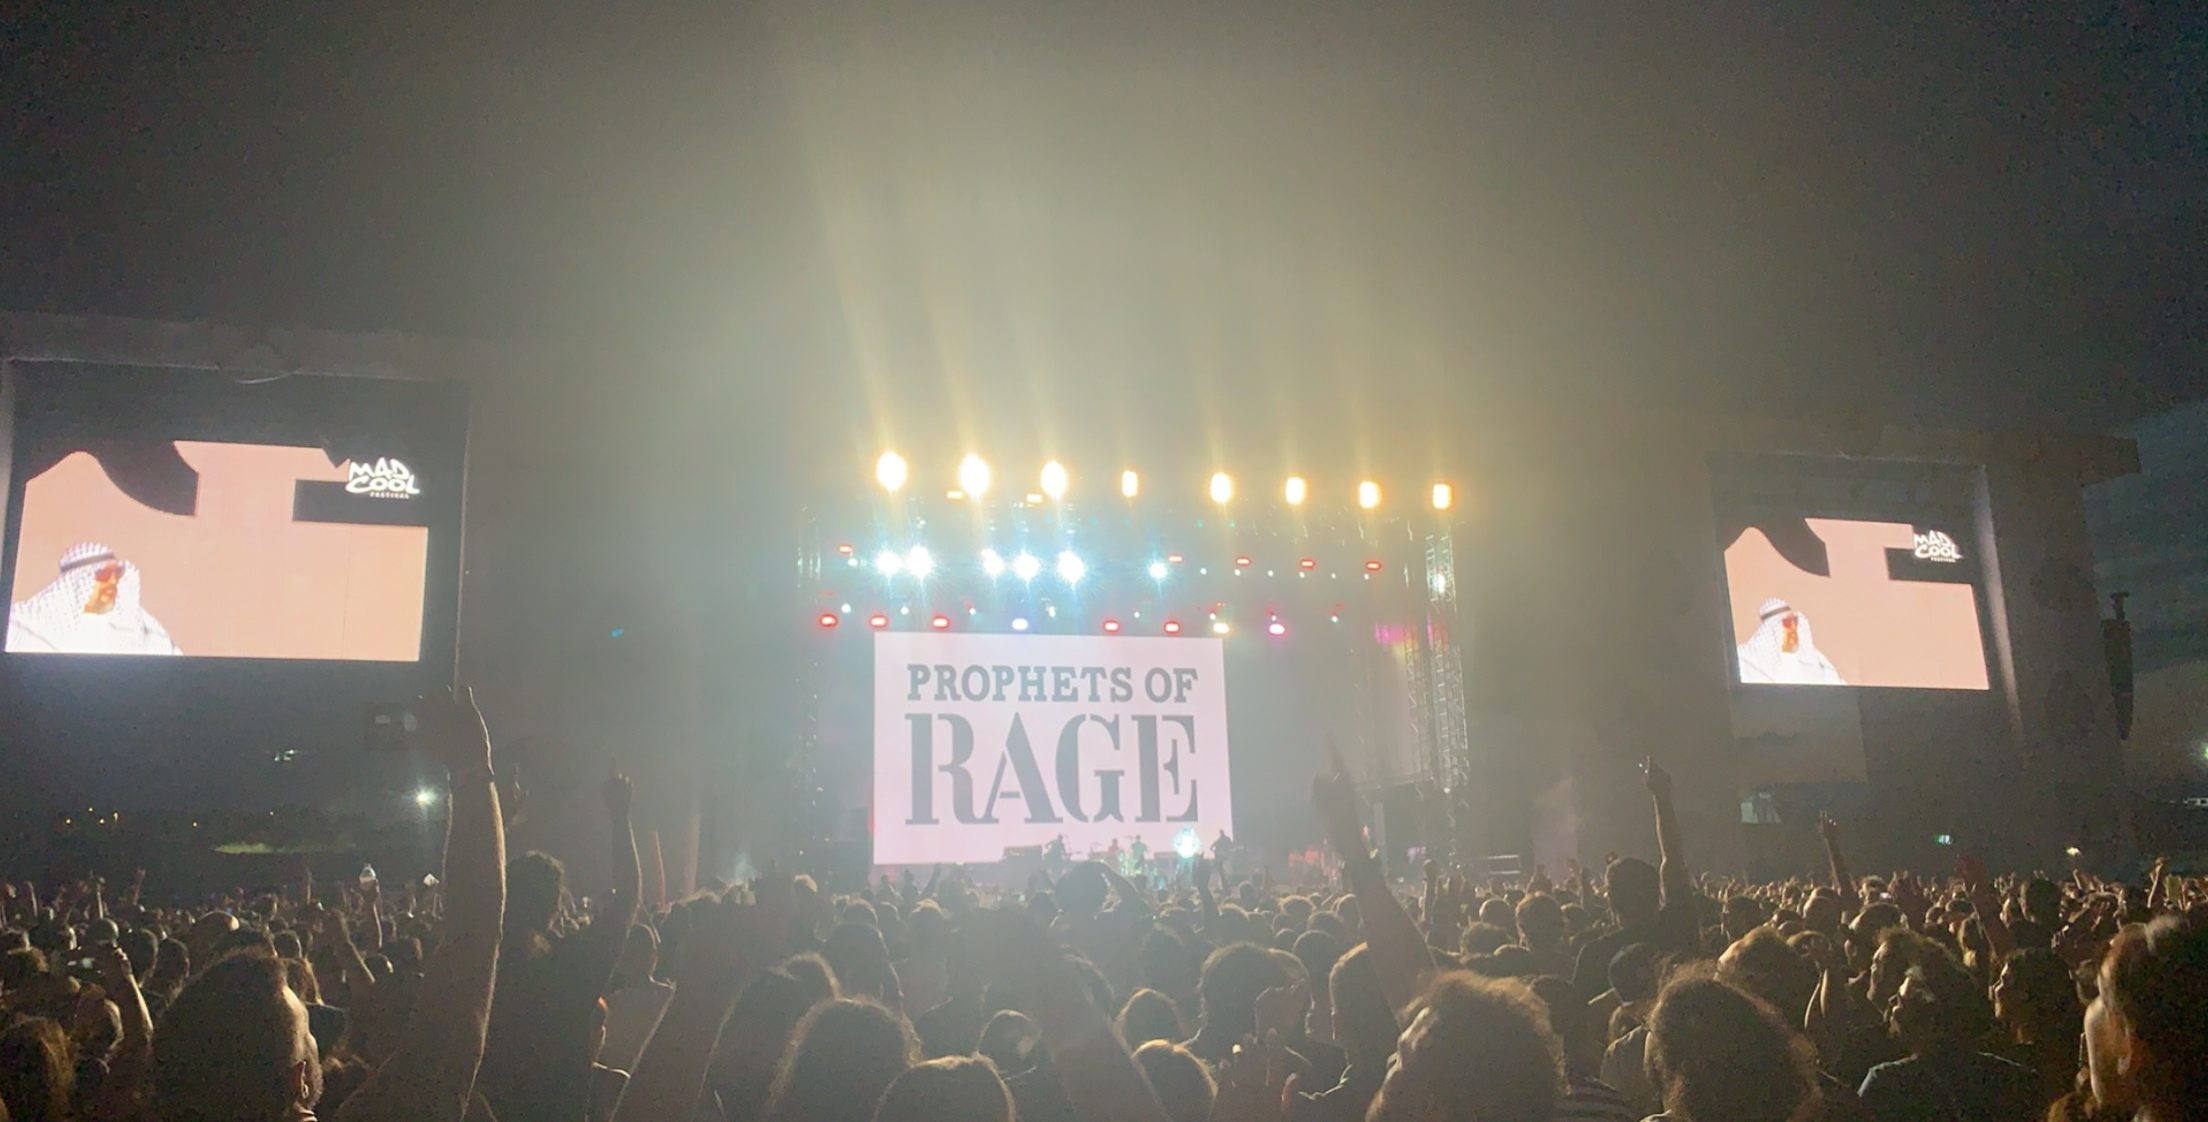 Prophets of Rage during an outrageous set at Mad Cool Festival.